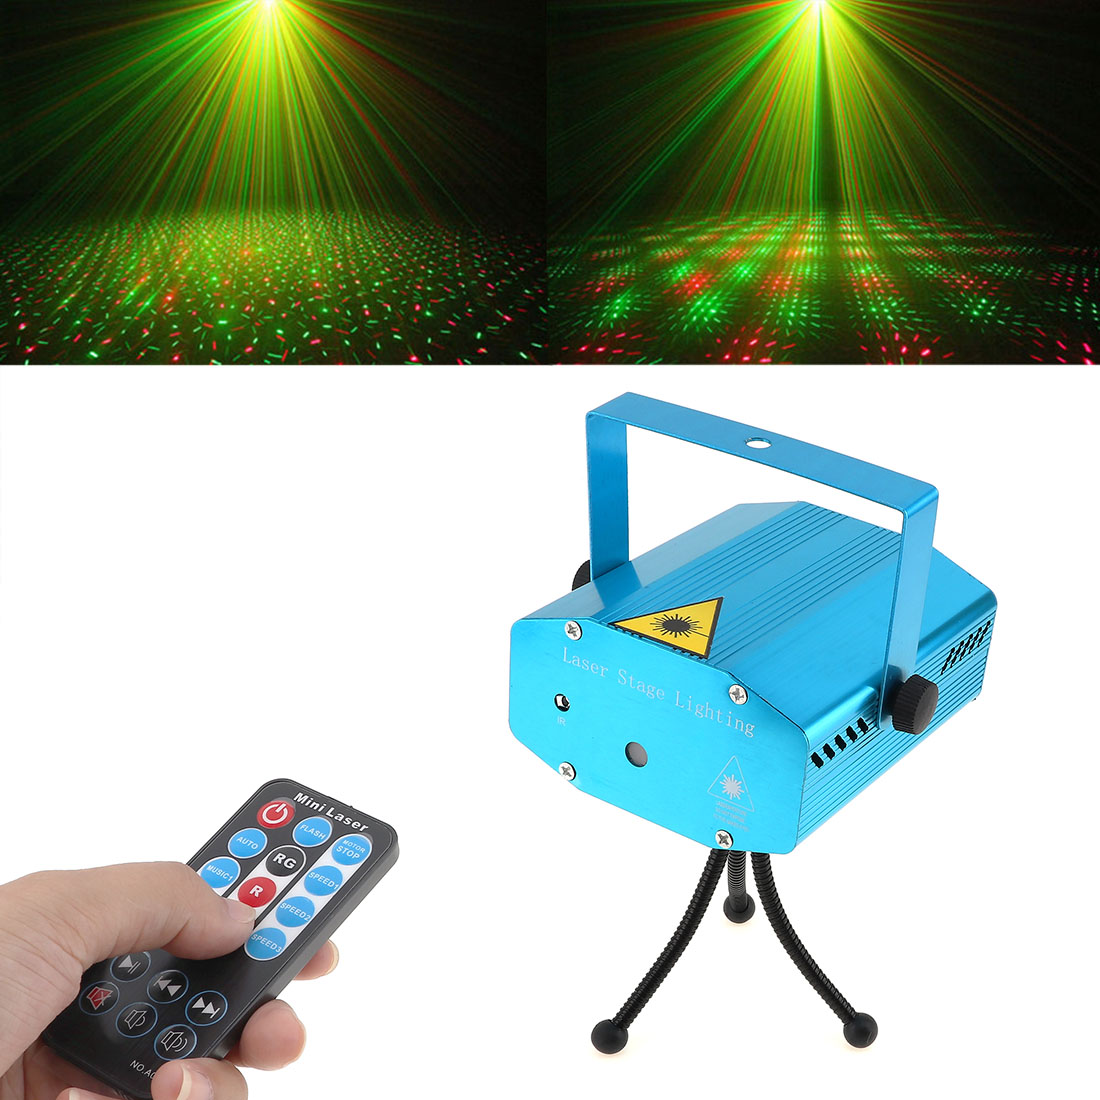 Mini LED Stage Light Laser Pointer Disco Party Pattern Lighting Projector RG Lase with Remote Control US /UK /AU/ EU plug